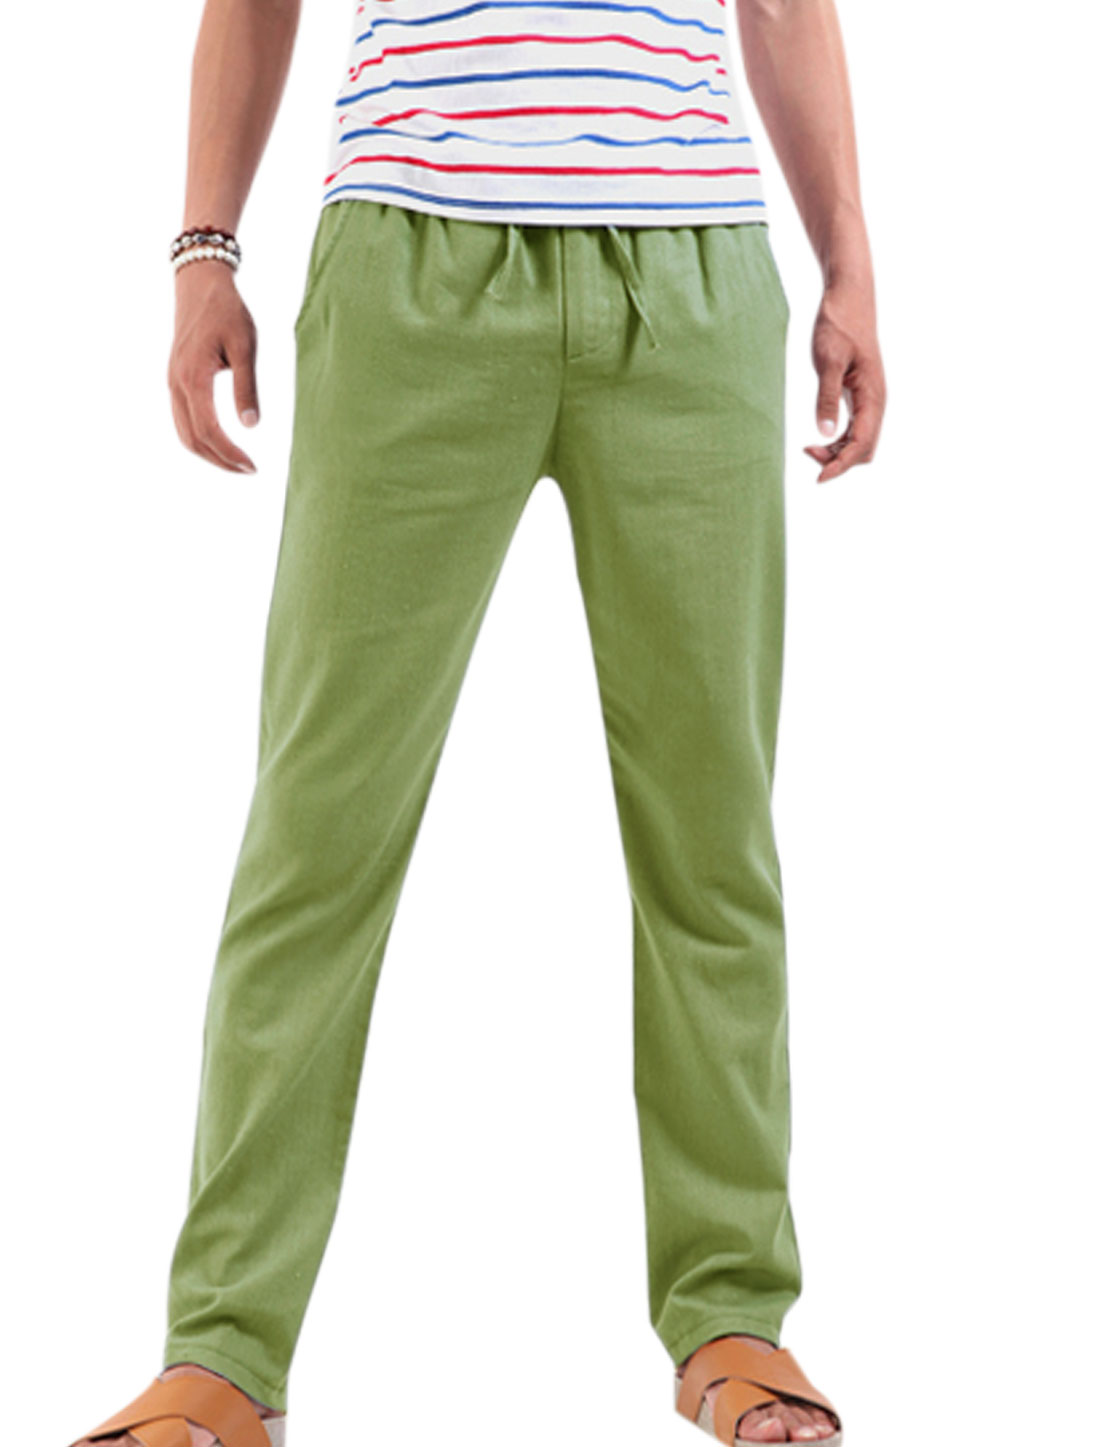 Men Stretchy Drawstring Waist Casual Pants Light Moss Green W28